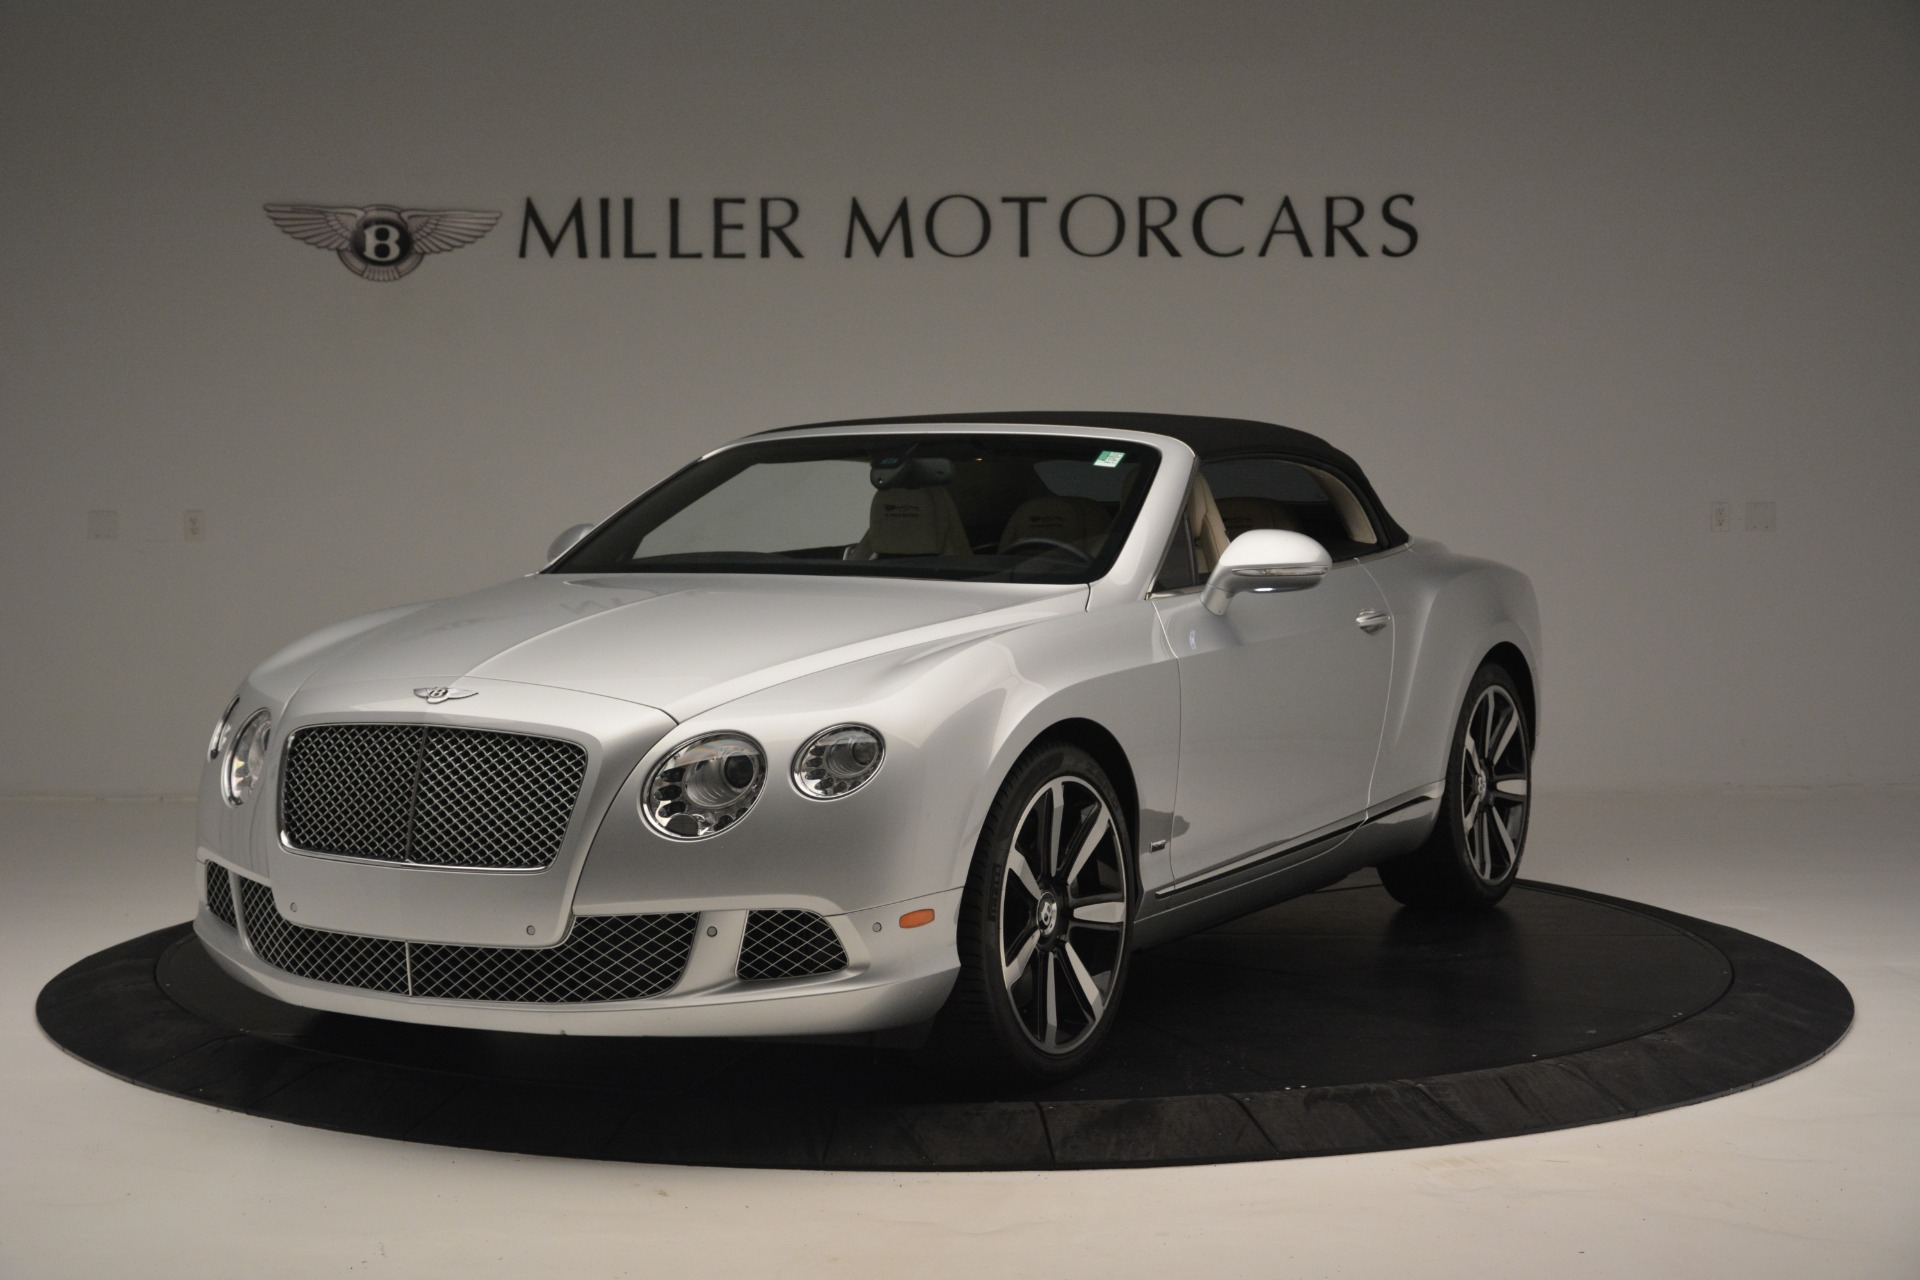 Used 2013 Bentley Continental GT W12 Le Mans Edition For Sale In Westport, CT 2519_p10